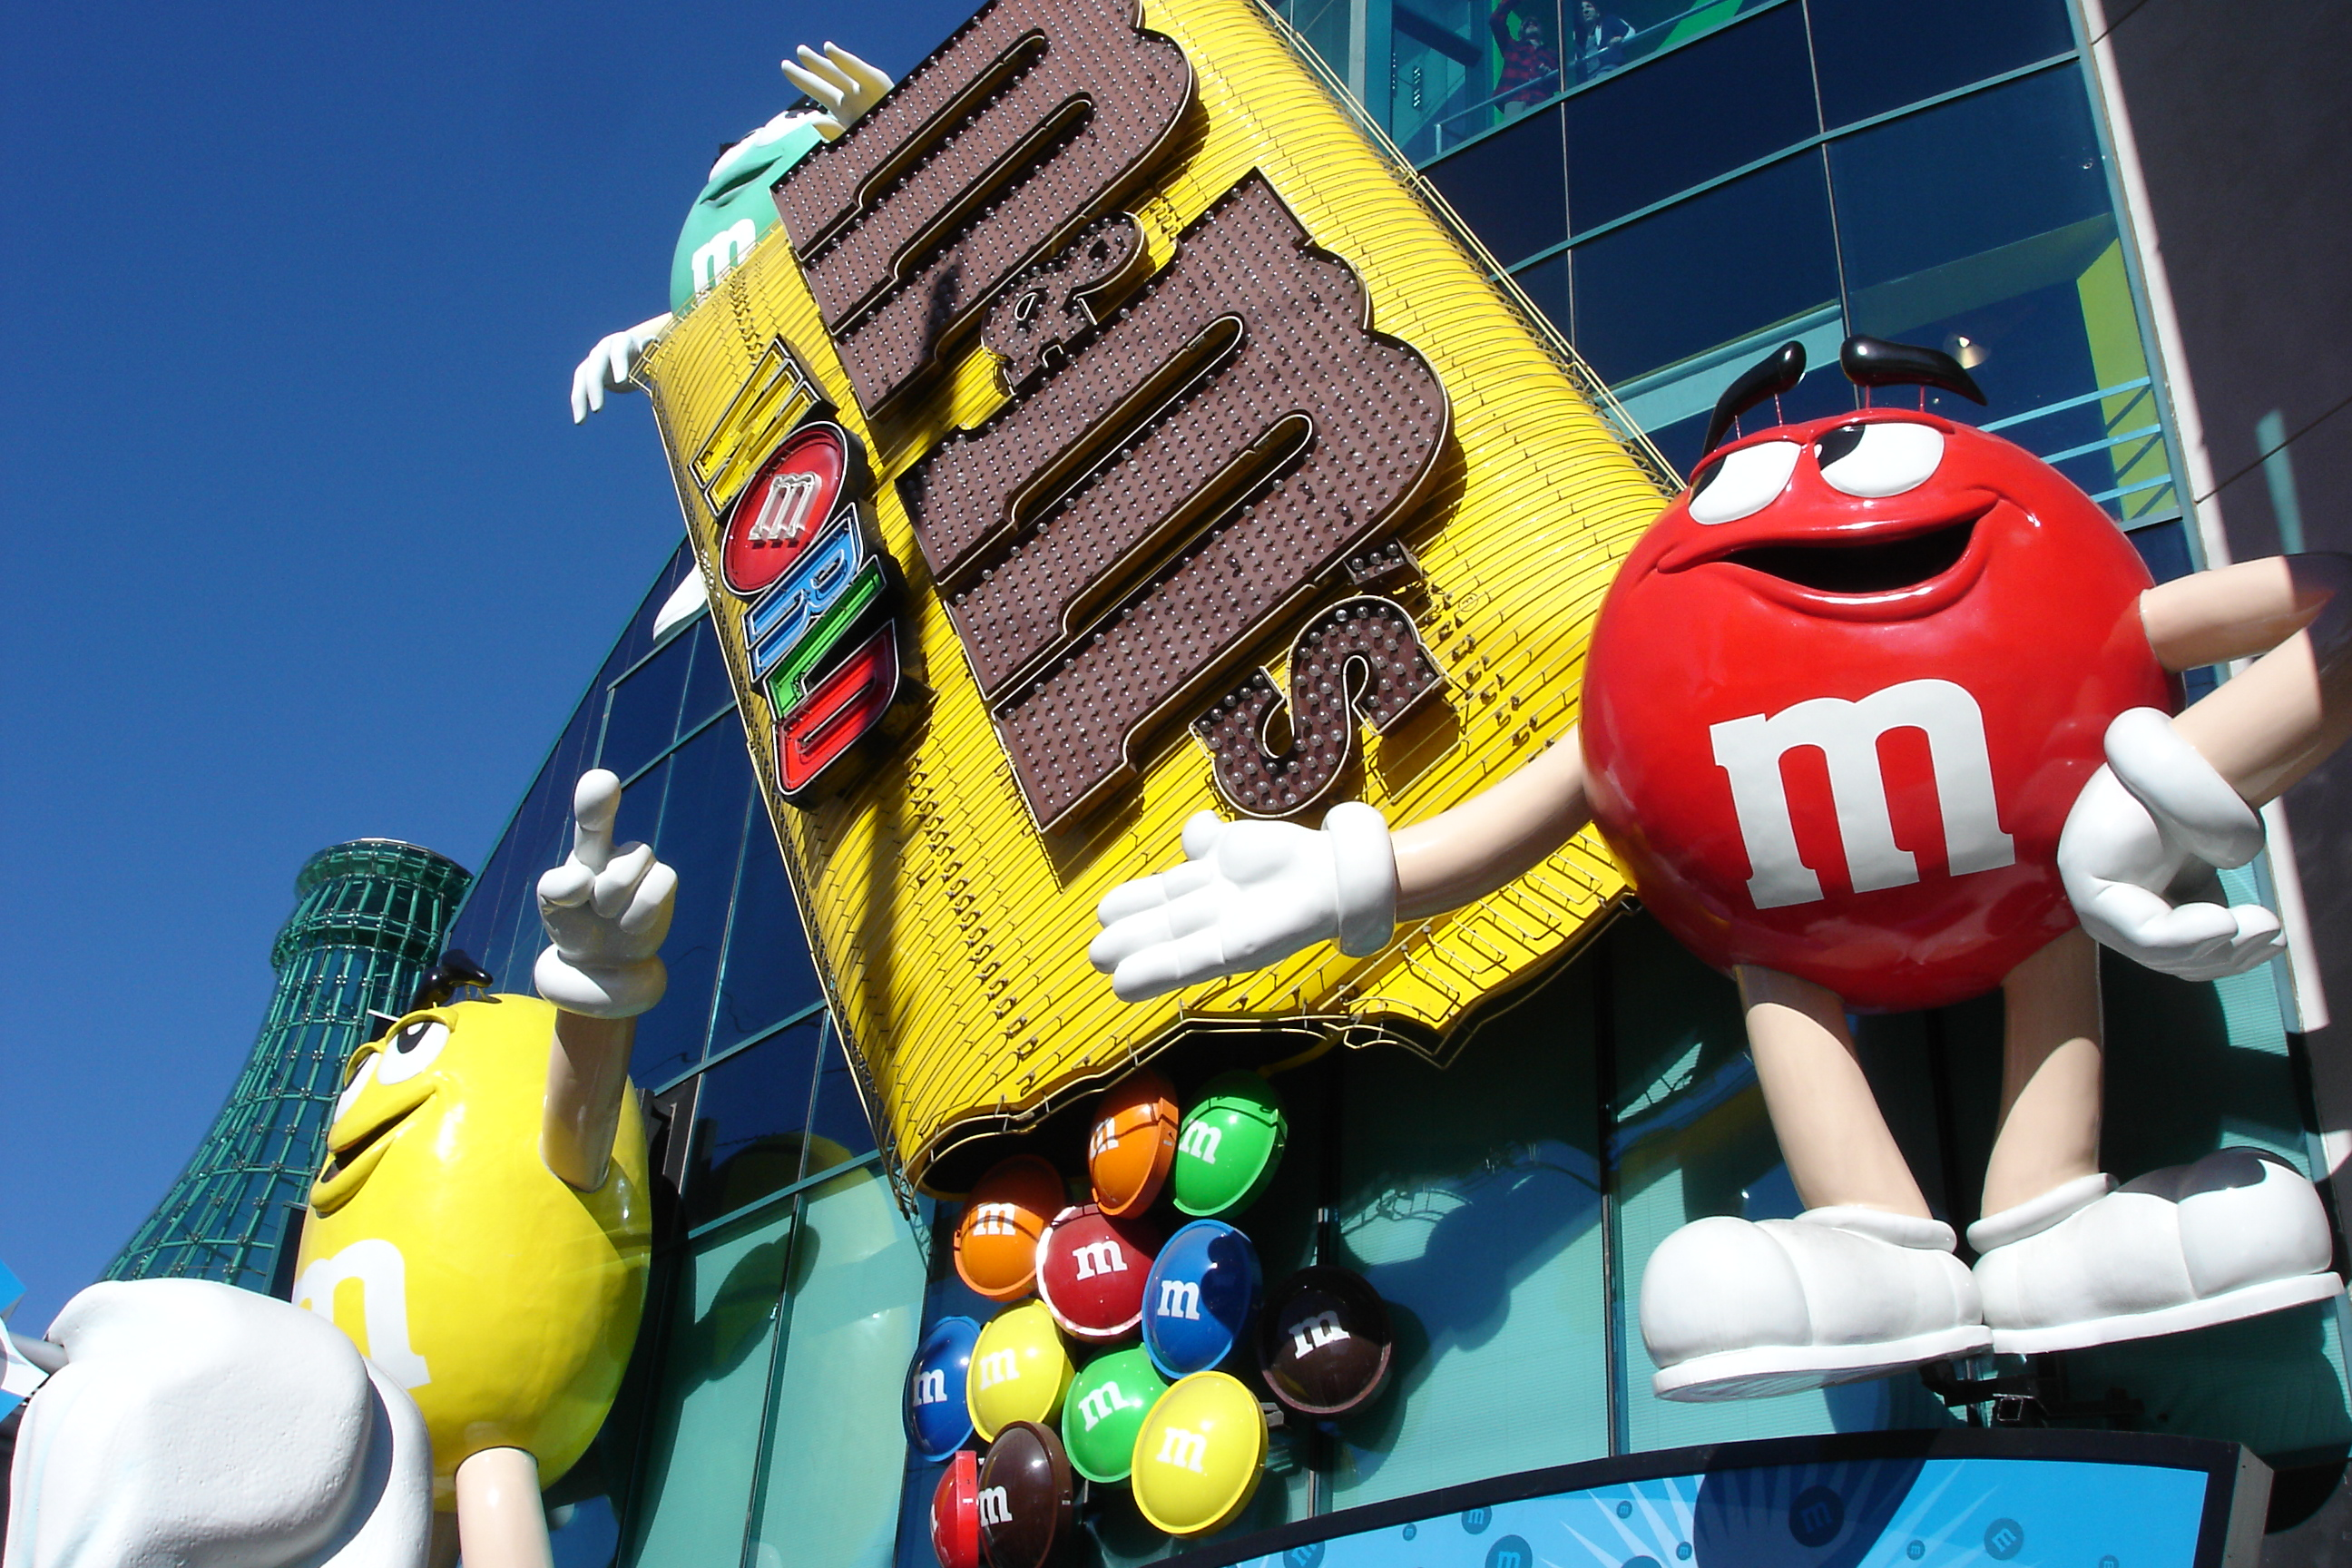 M&M's World - Las Vegas, NV Image